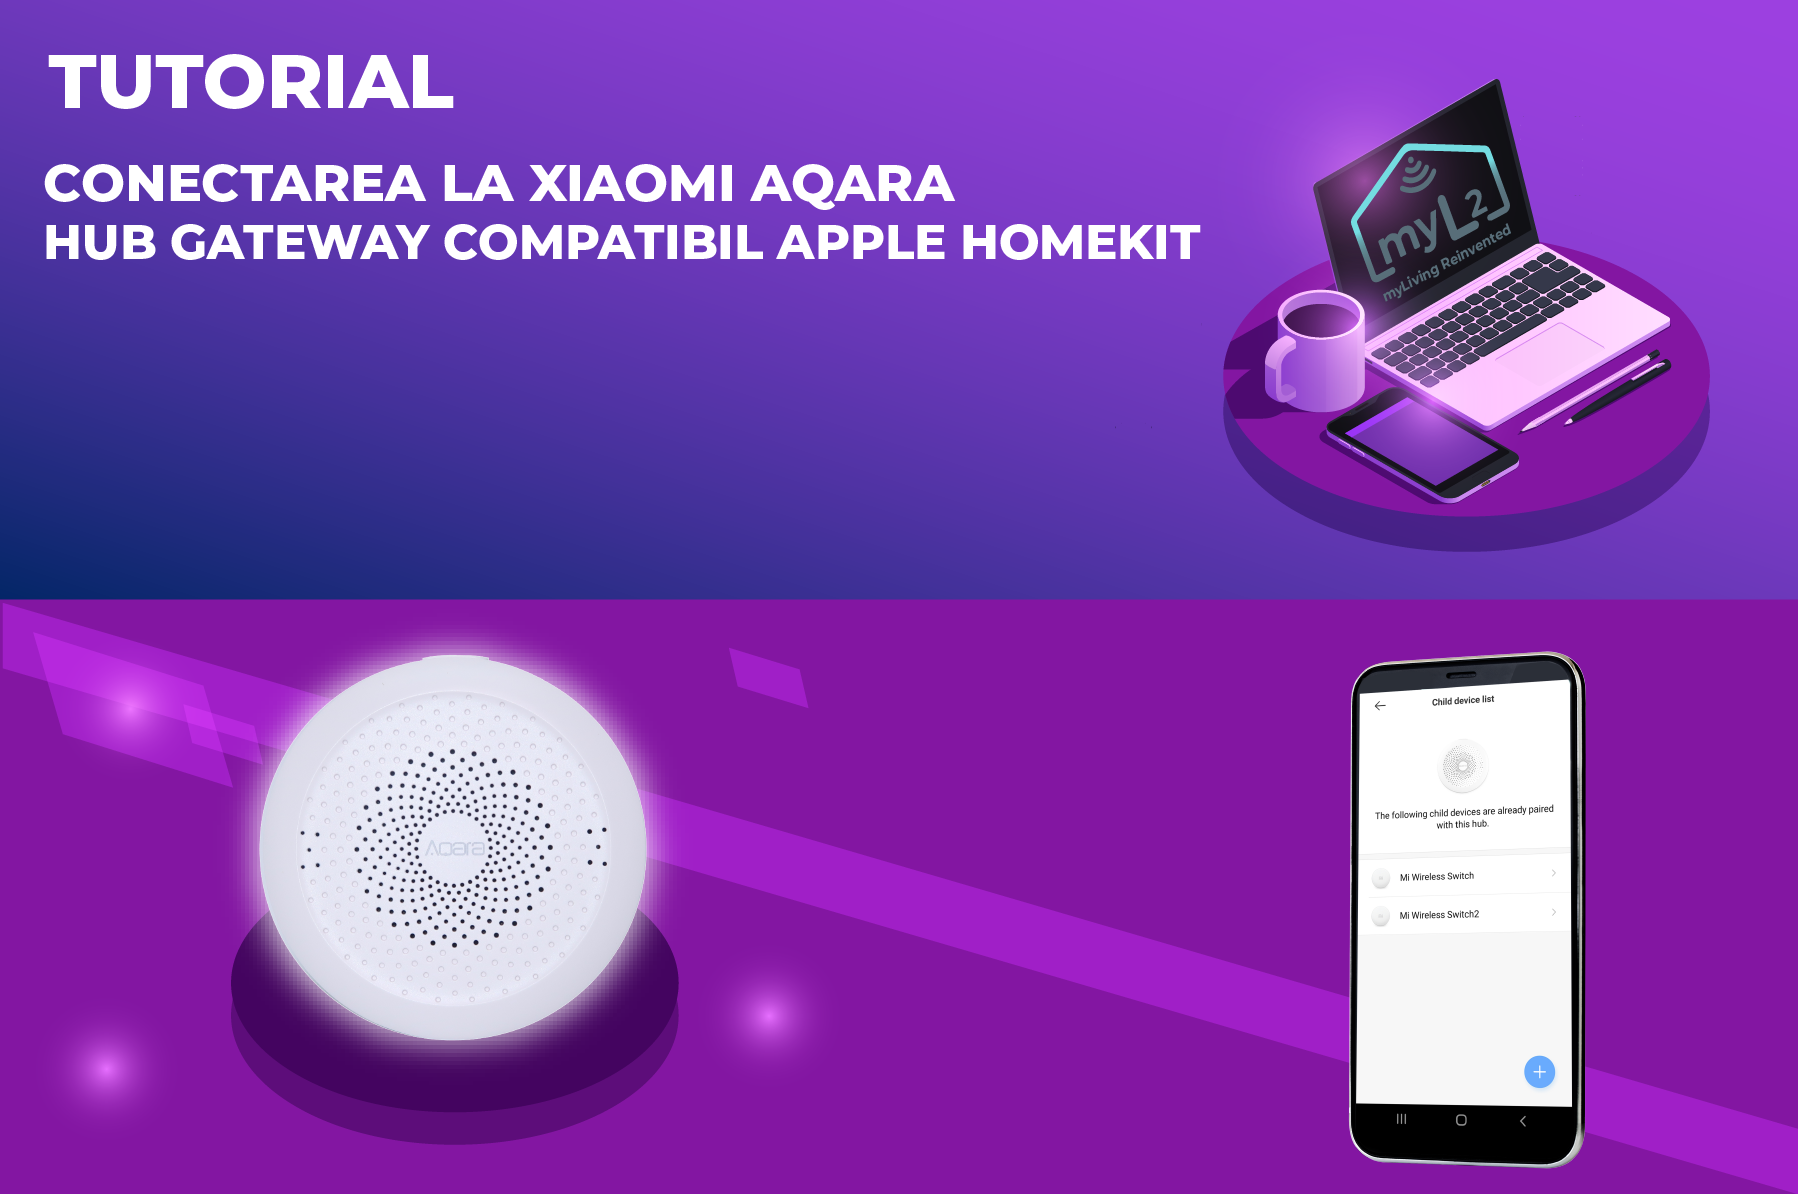 tutorial conectare hub gateway xiaomi aqara zigbee compatibil apple homekit